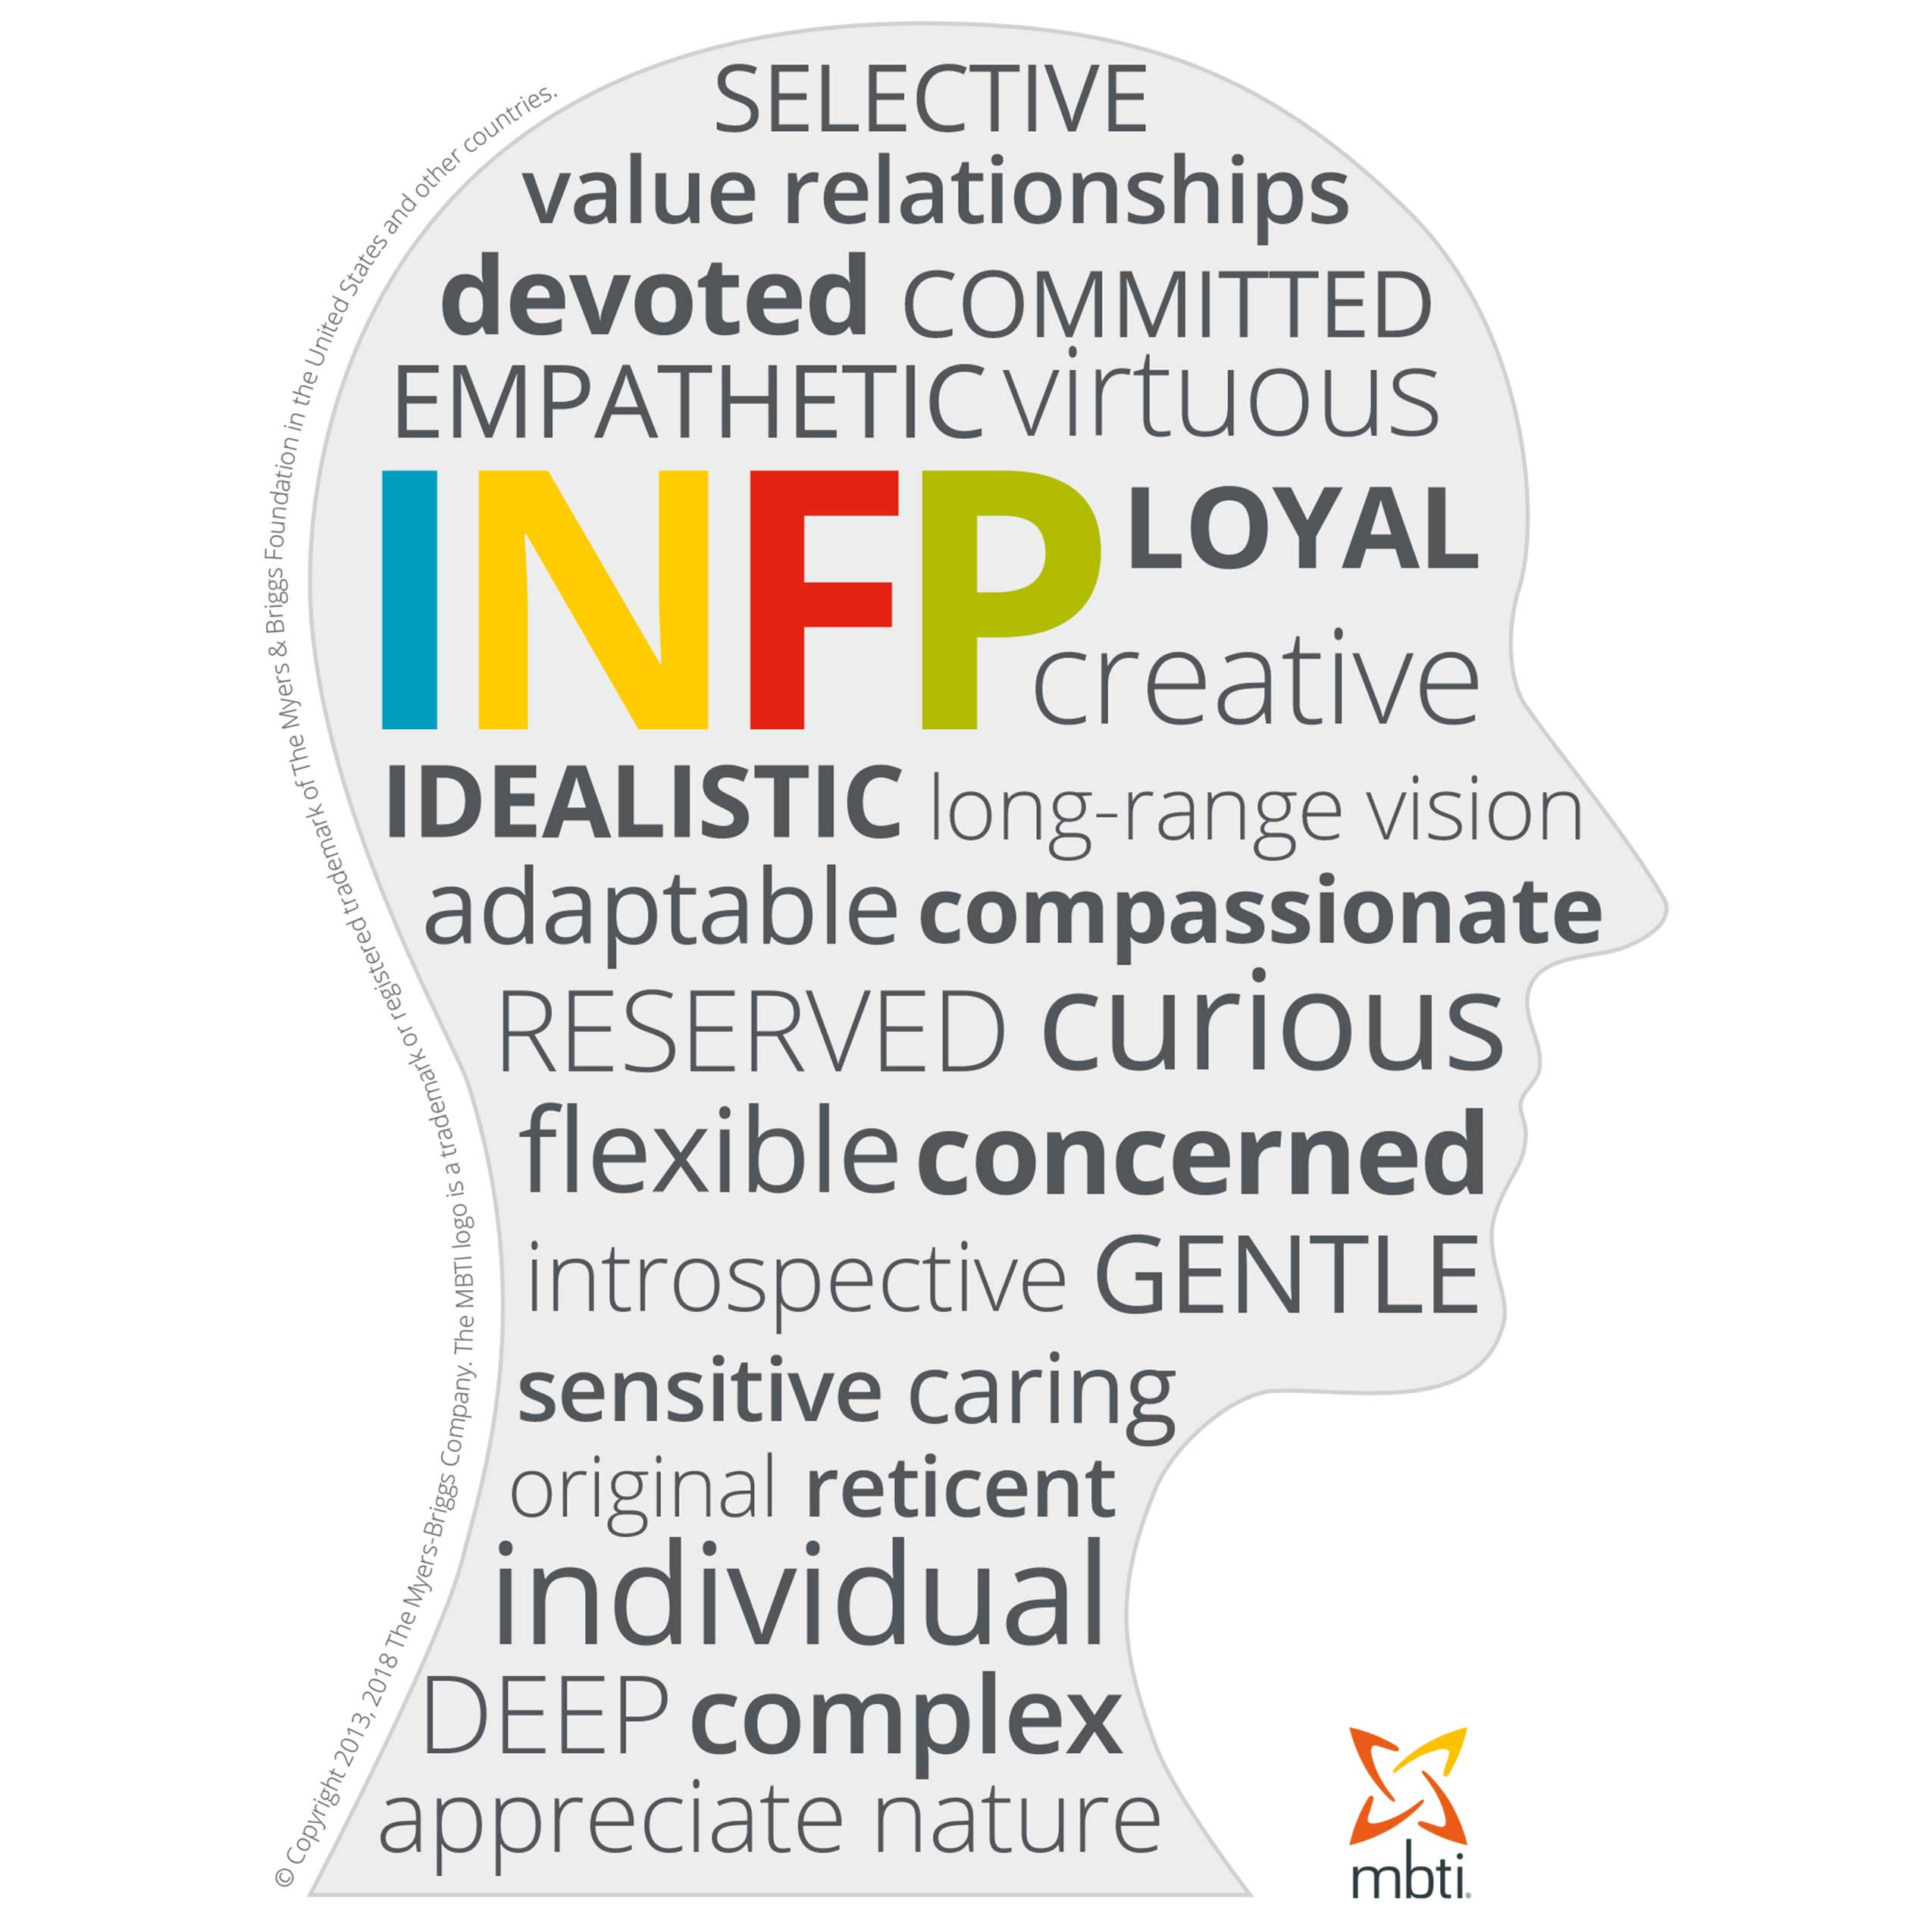 MBTI Myers-Briggs Personality Type Characteristics INFP